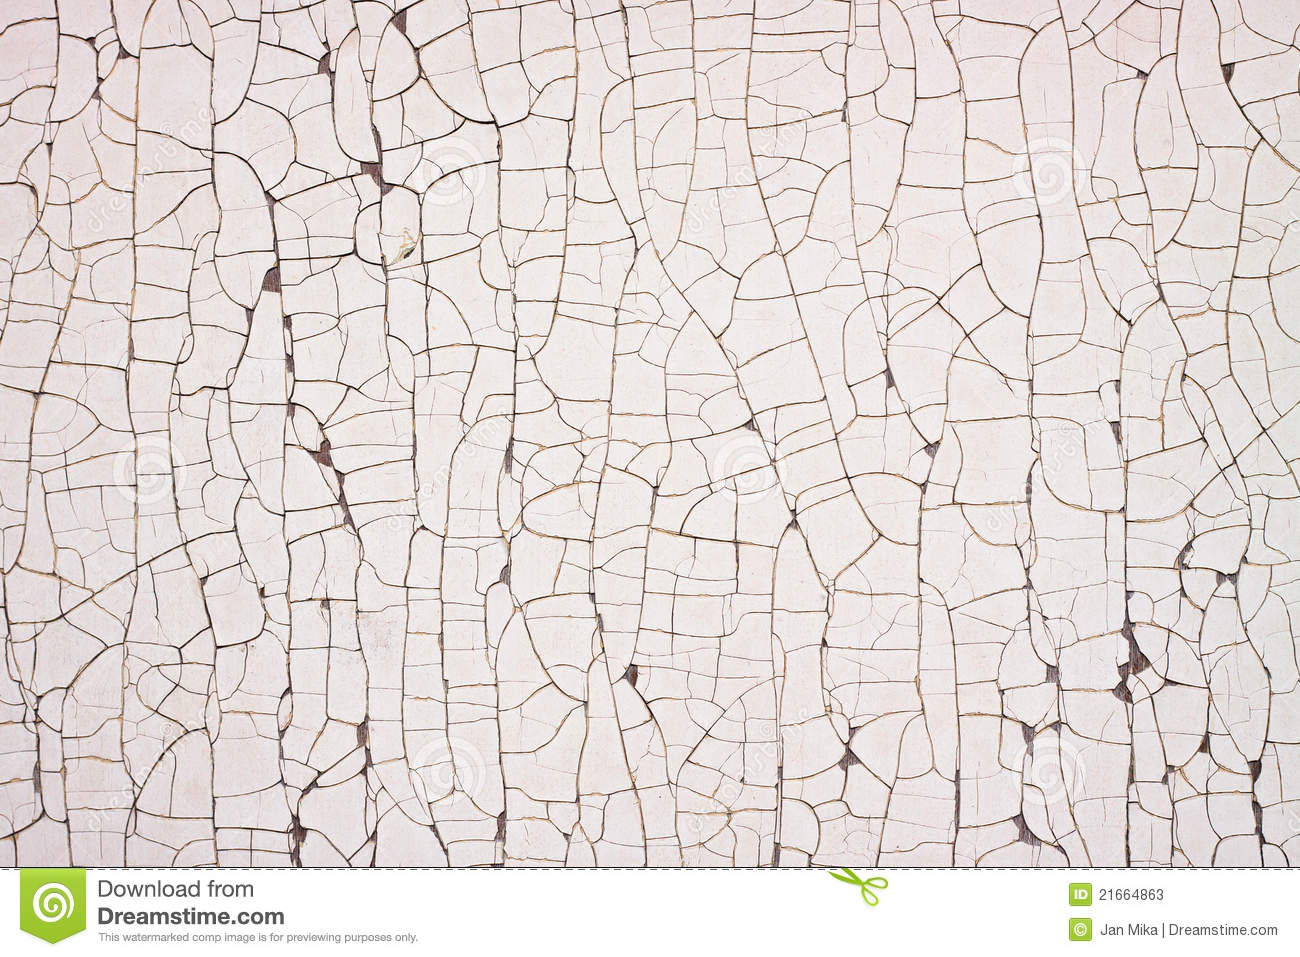 Cracked Paint Texture Background Stock Image - Image: 21664863